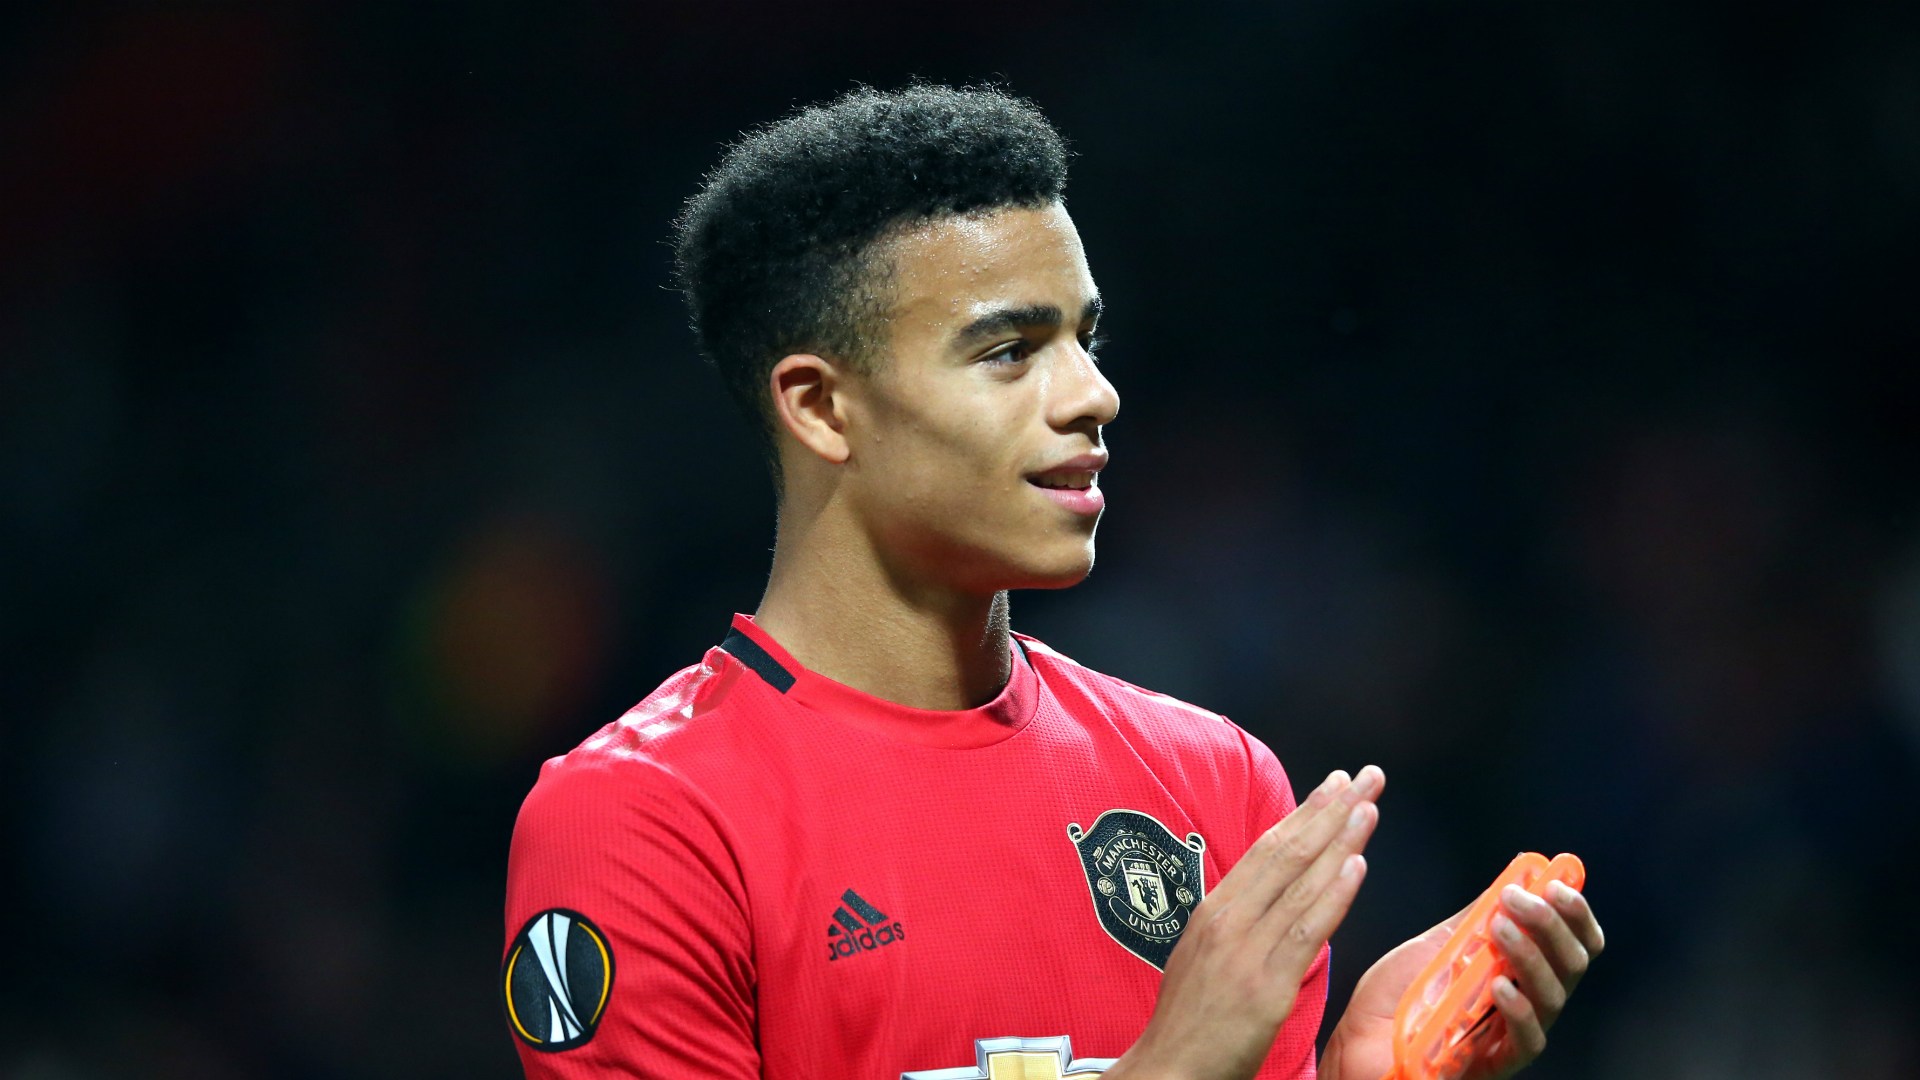 'They are almost ready' - Solskjaer biding time before using youngsters in Premier League